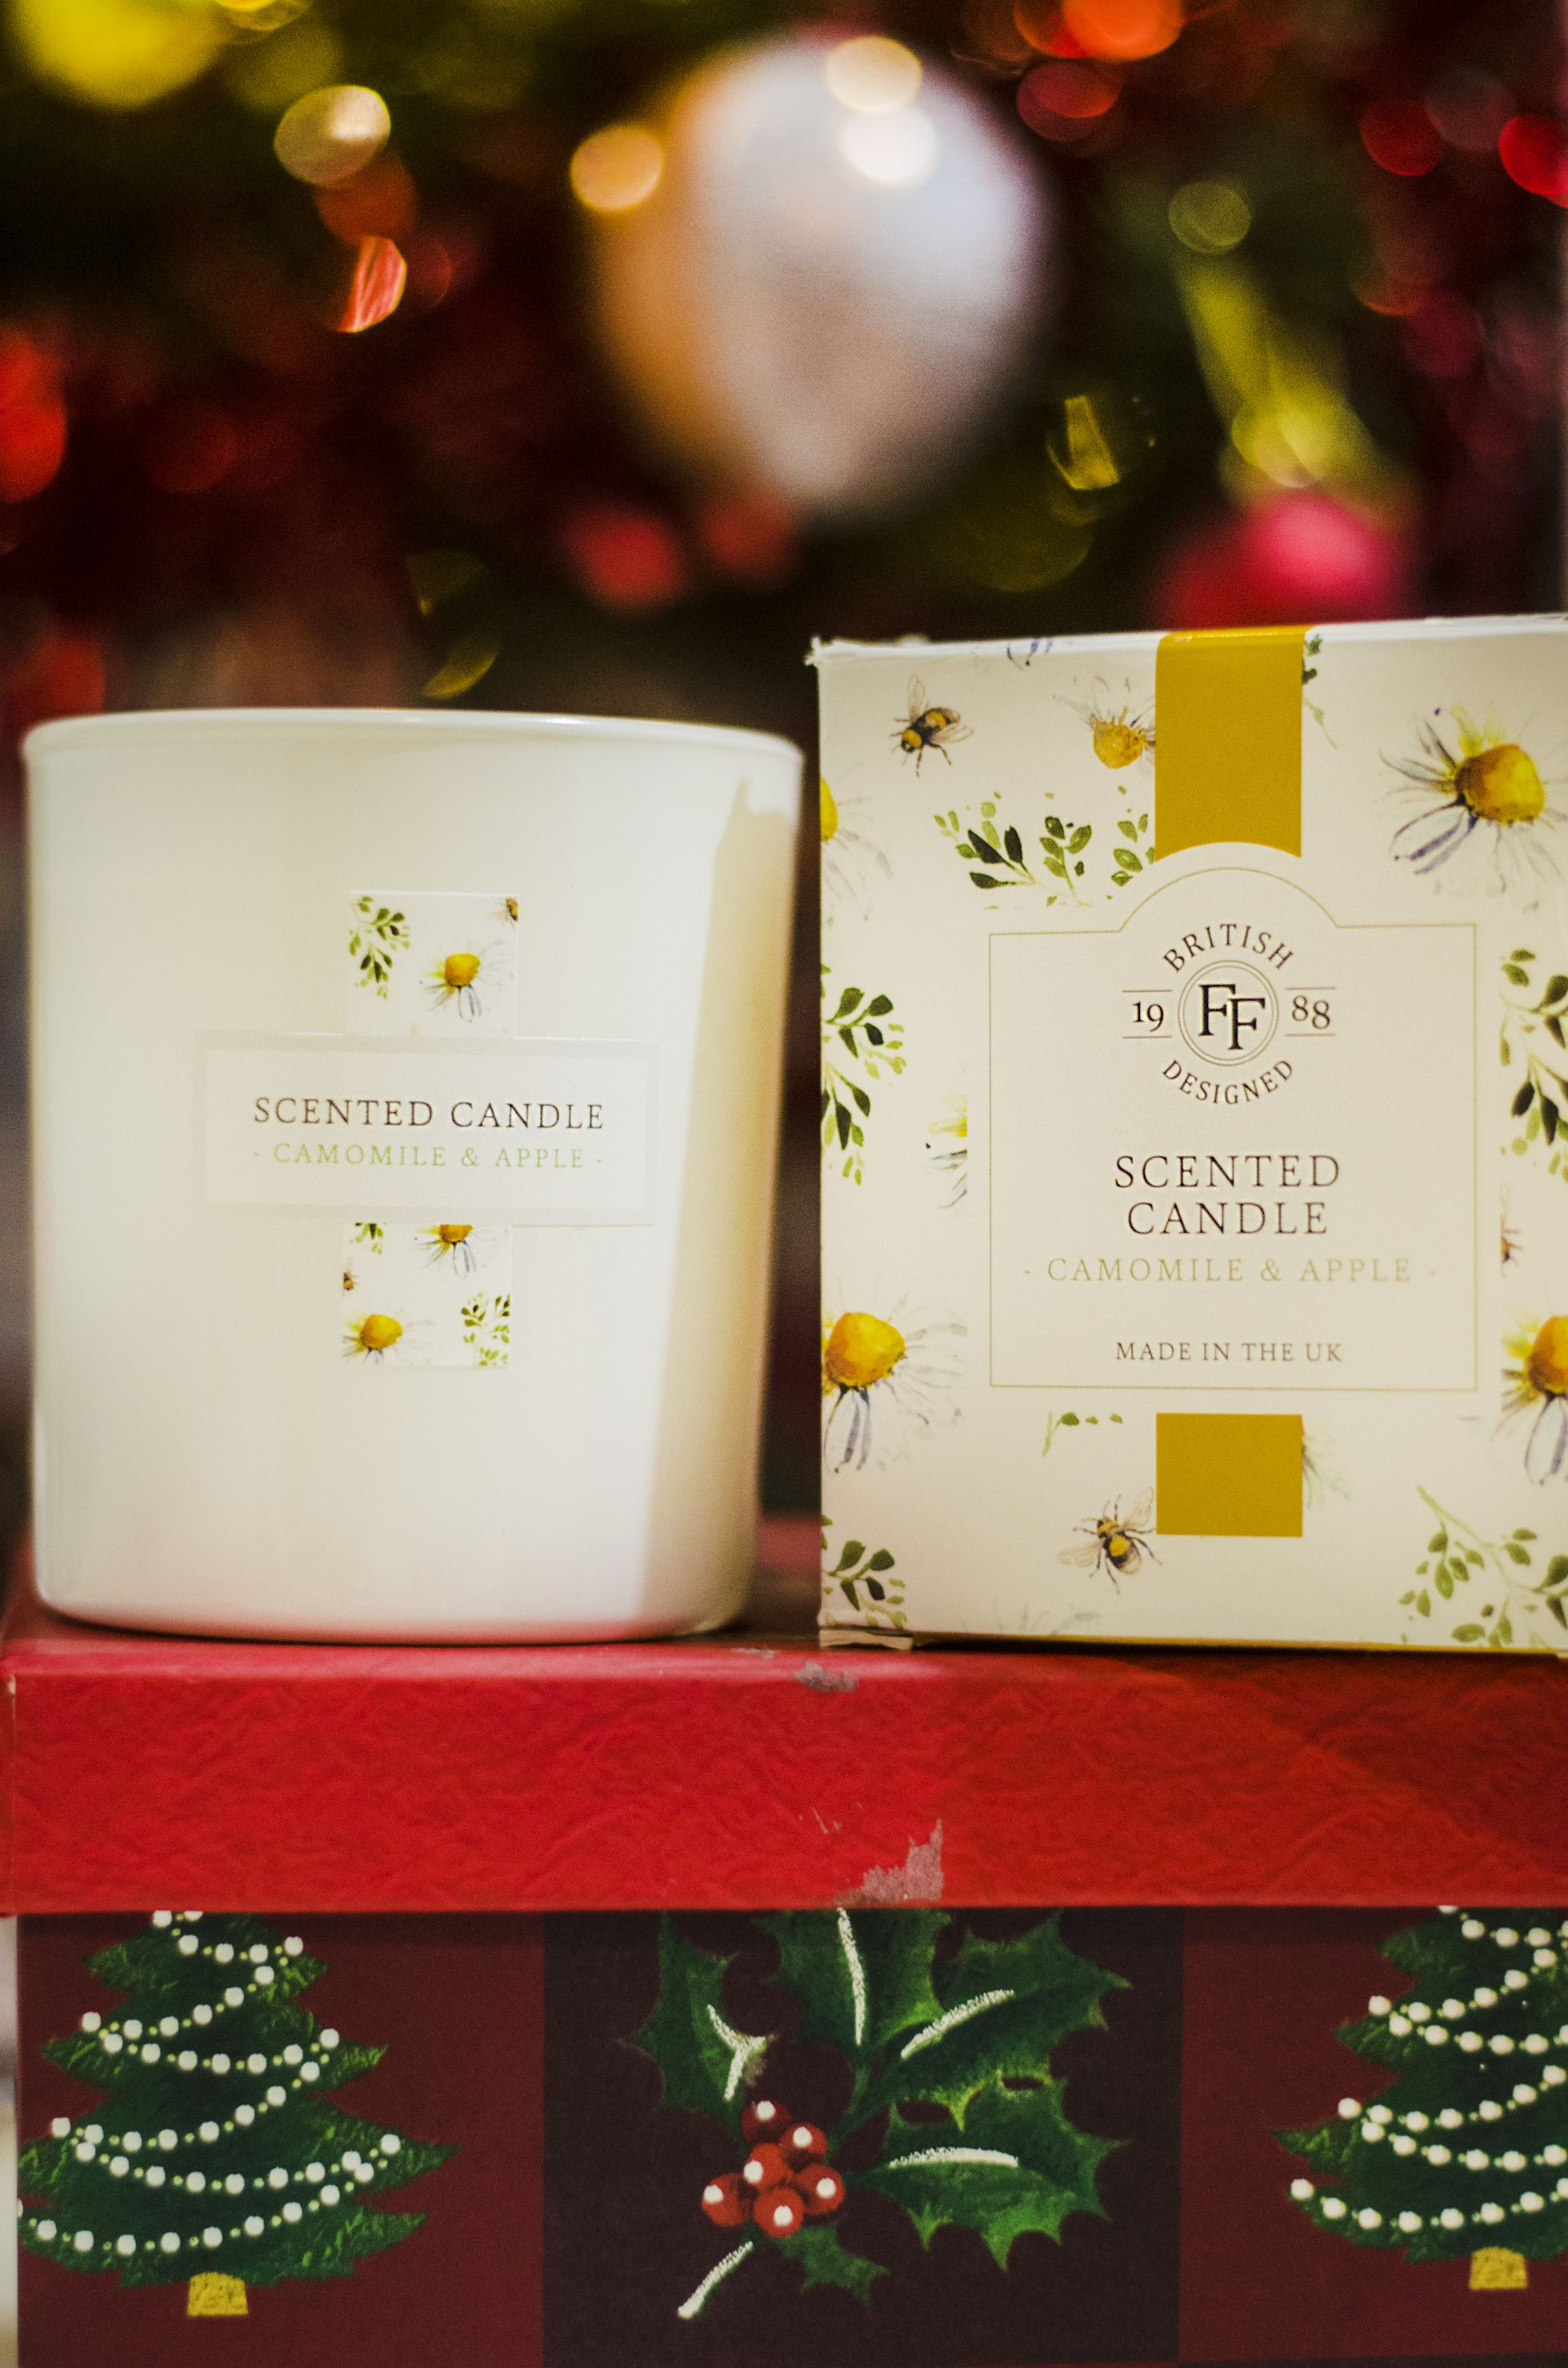 FatFace scented candle